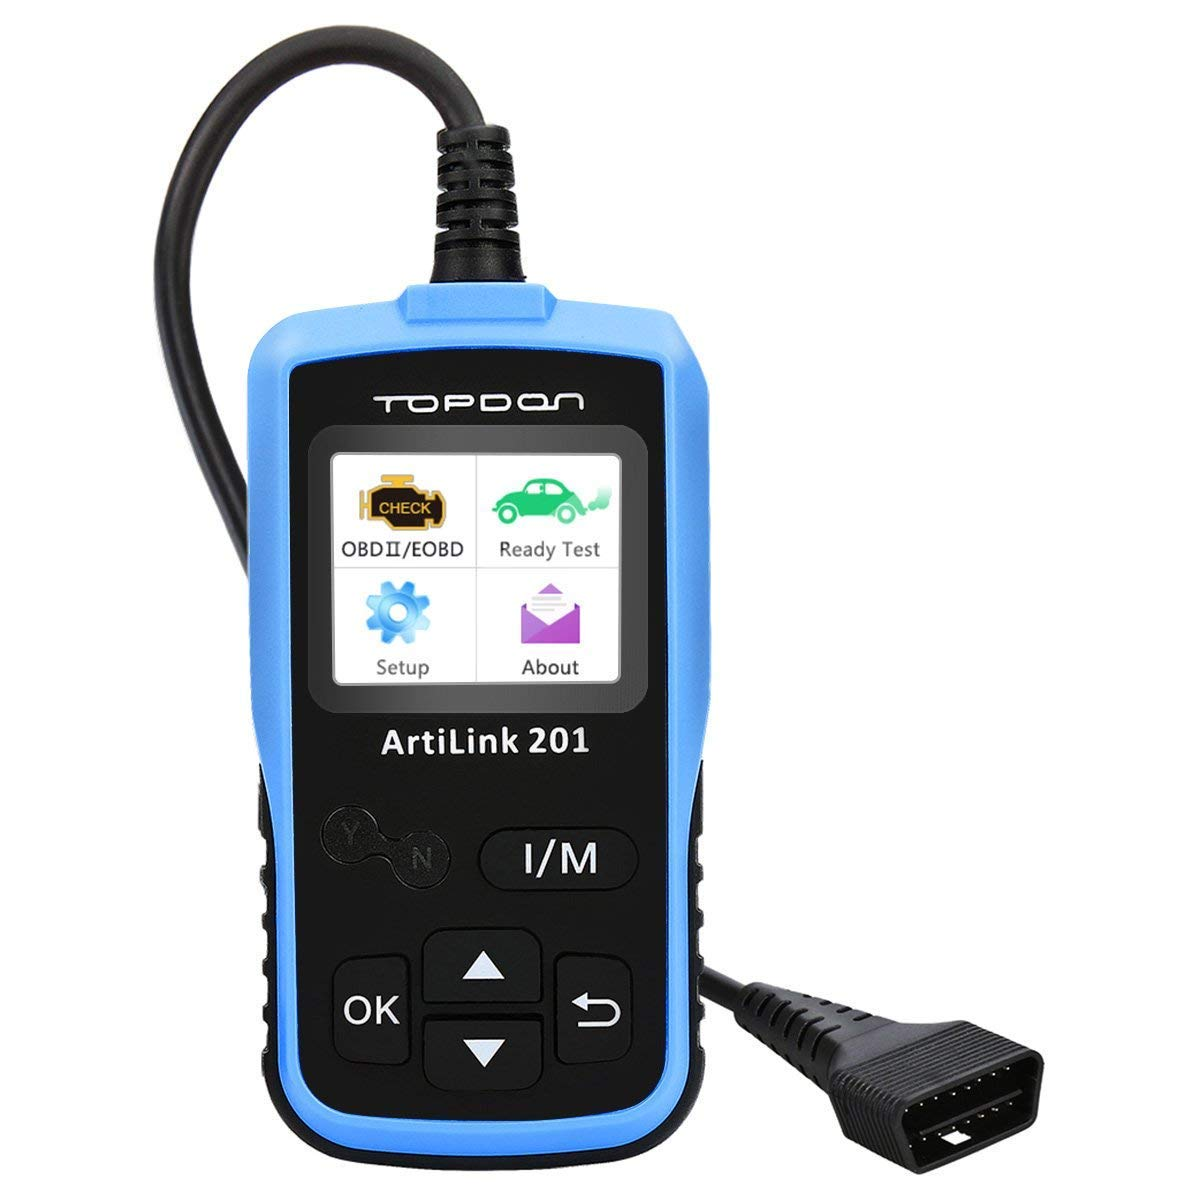 TT TOPDON AL201 Automotive OBD2 Scanner Updatable Fault Code Reader for I/M Readiness Test and Turn Off MIL